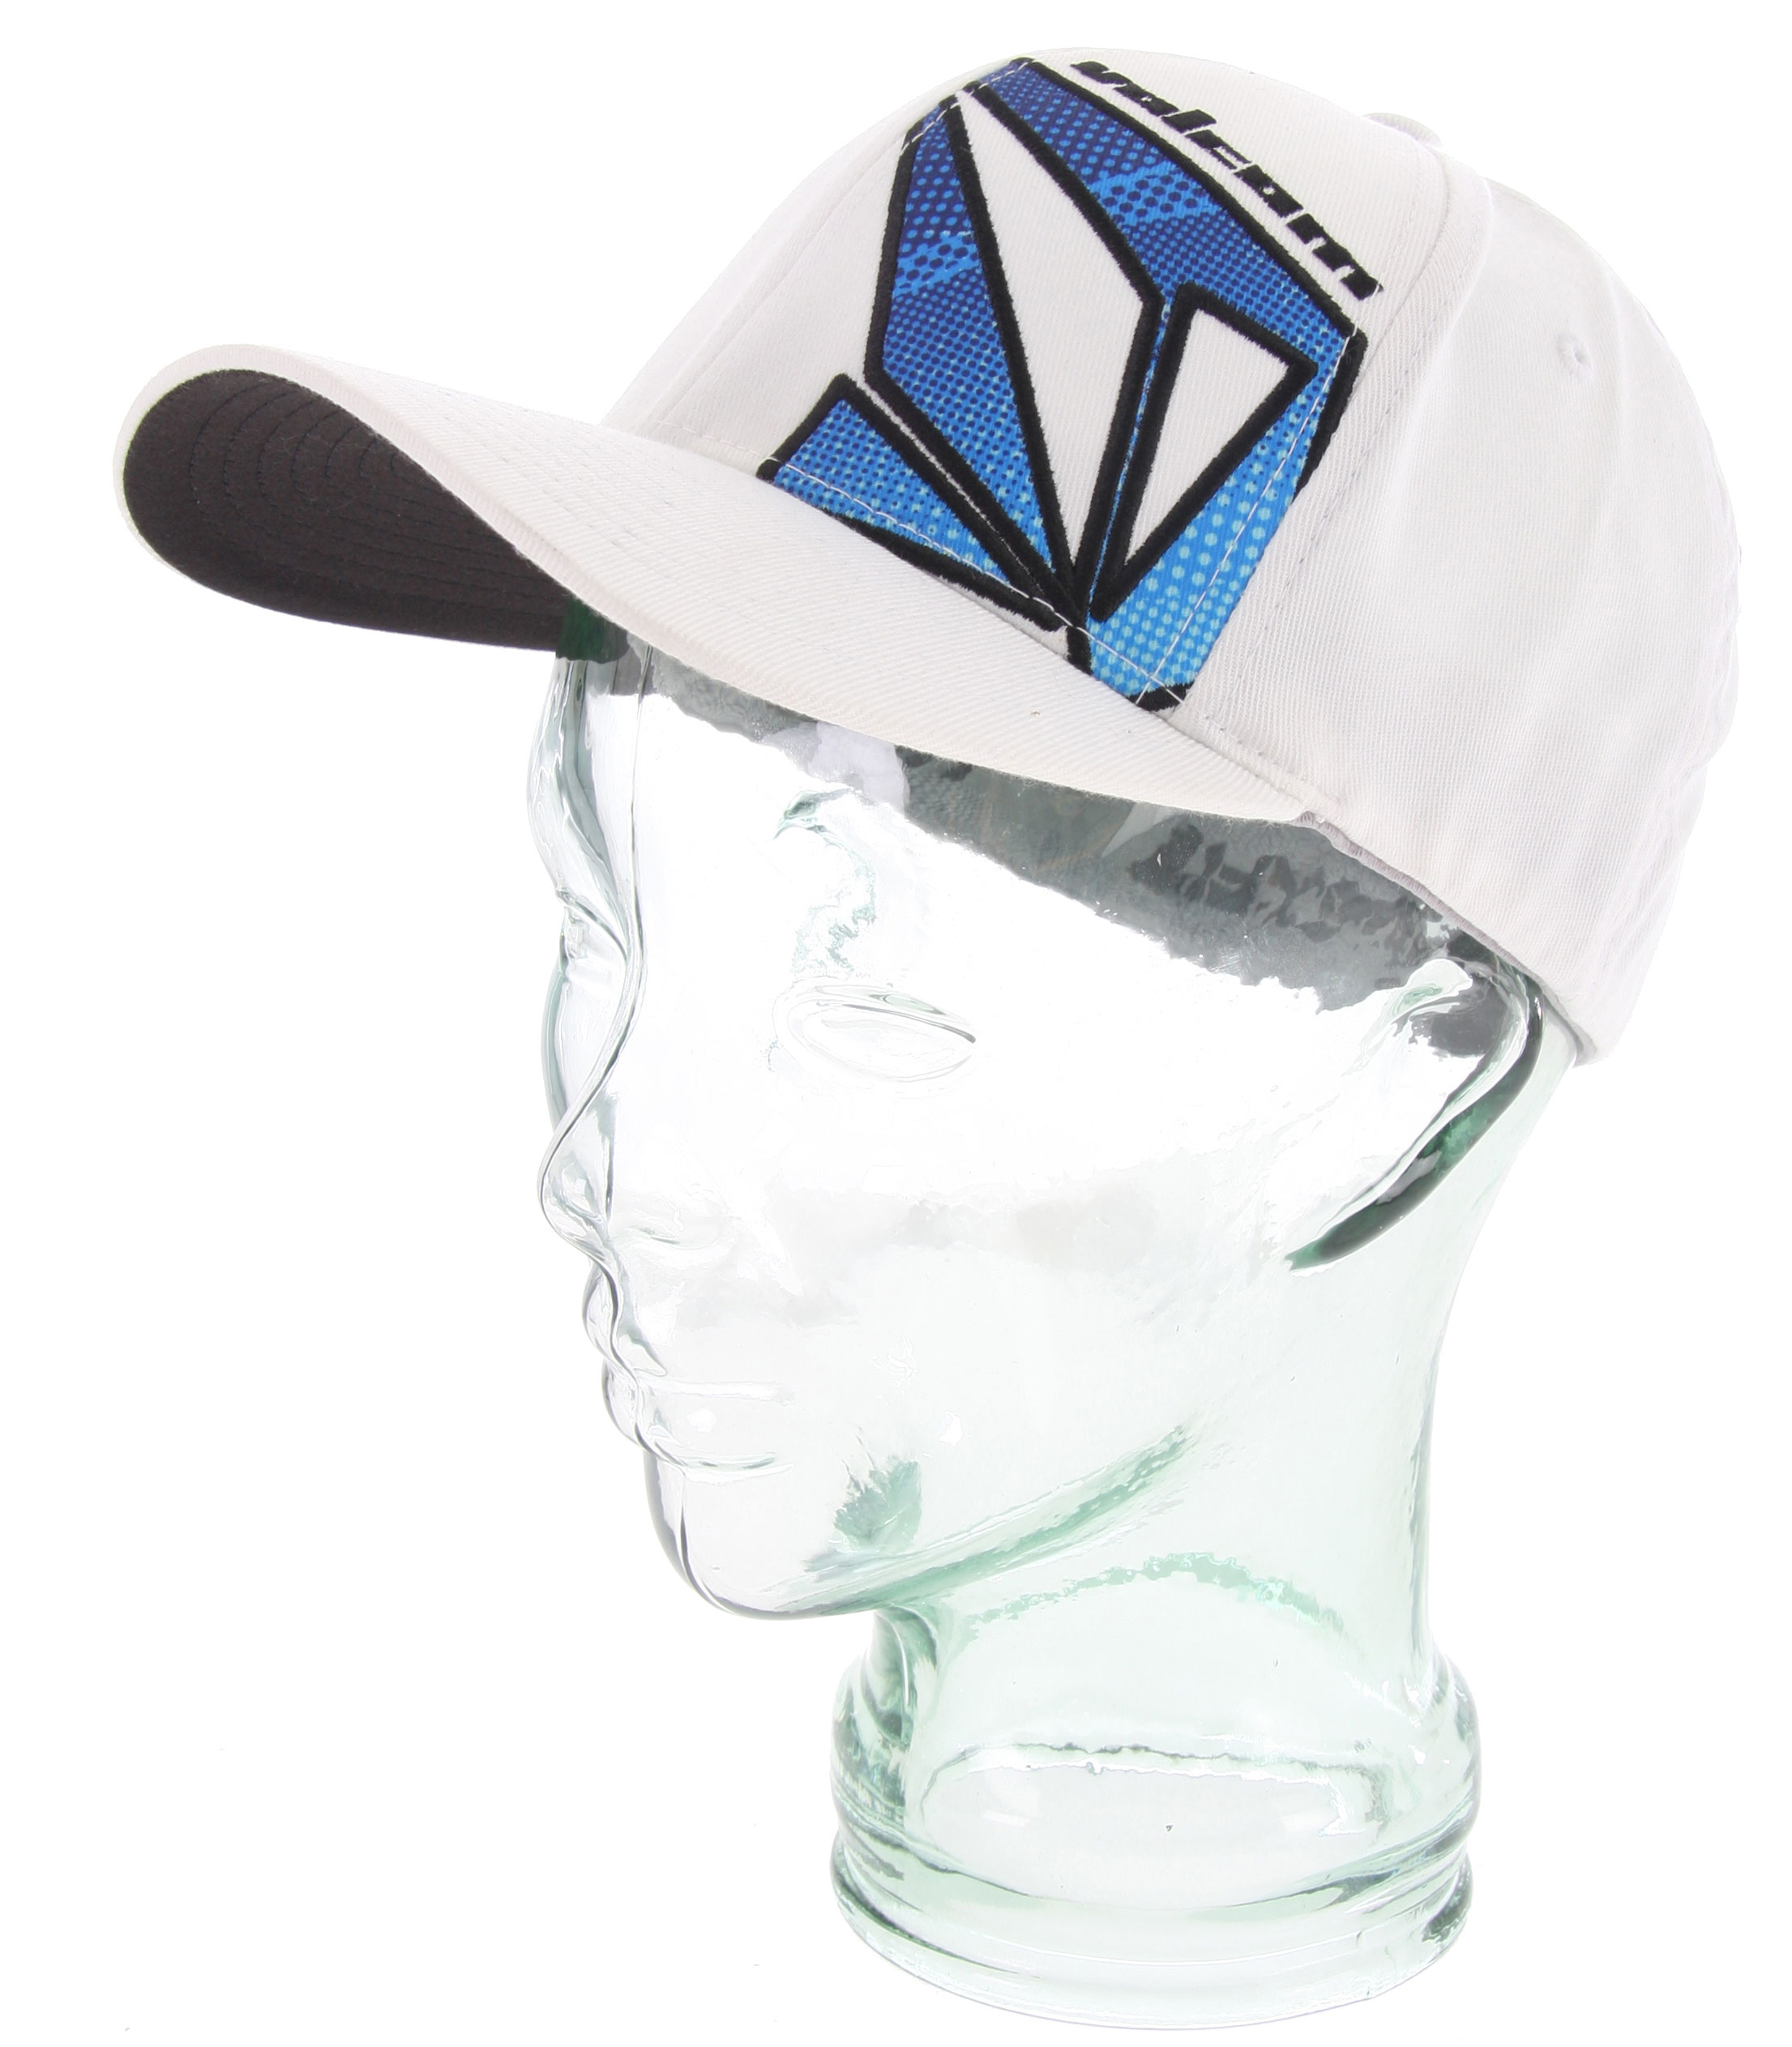 Surf Key Features of the Volcom The Alt Transplant 6277 Hat: 6 Panel 6277 Flexfit Hat 2-Color 'Volcom/Stone' Applique/Embroidery 63% Polyester/34% Cotton/3% Elastane - $26.95